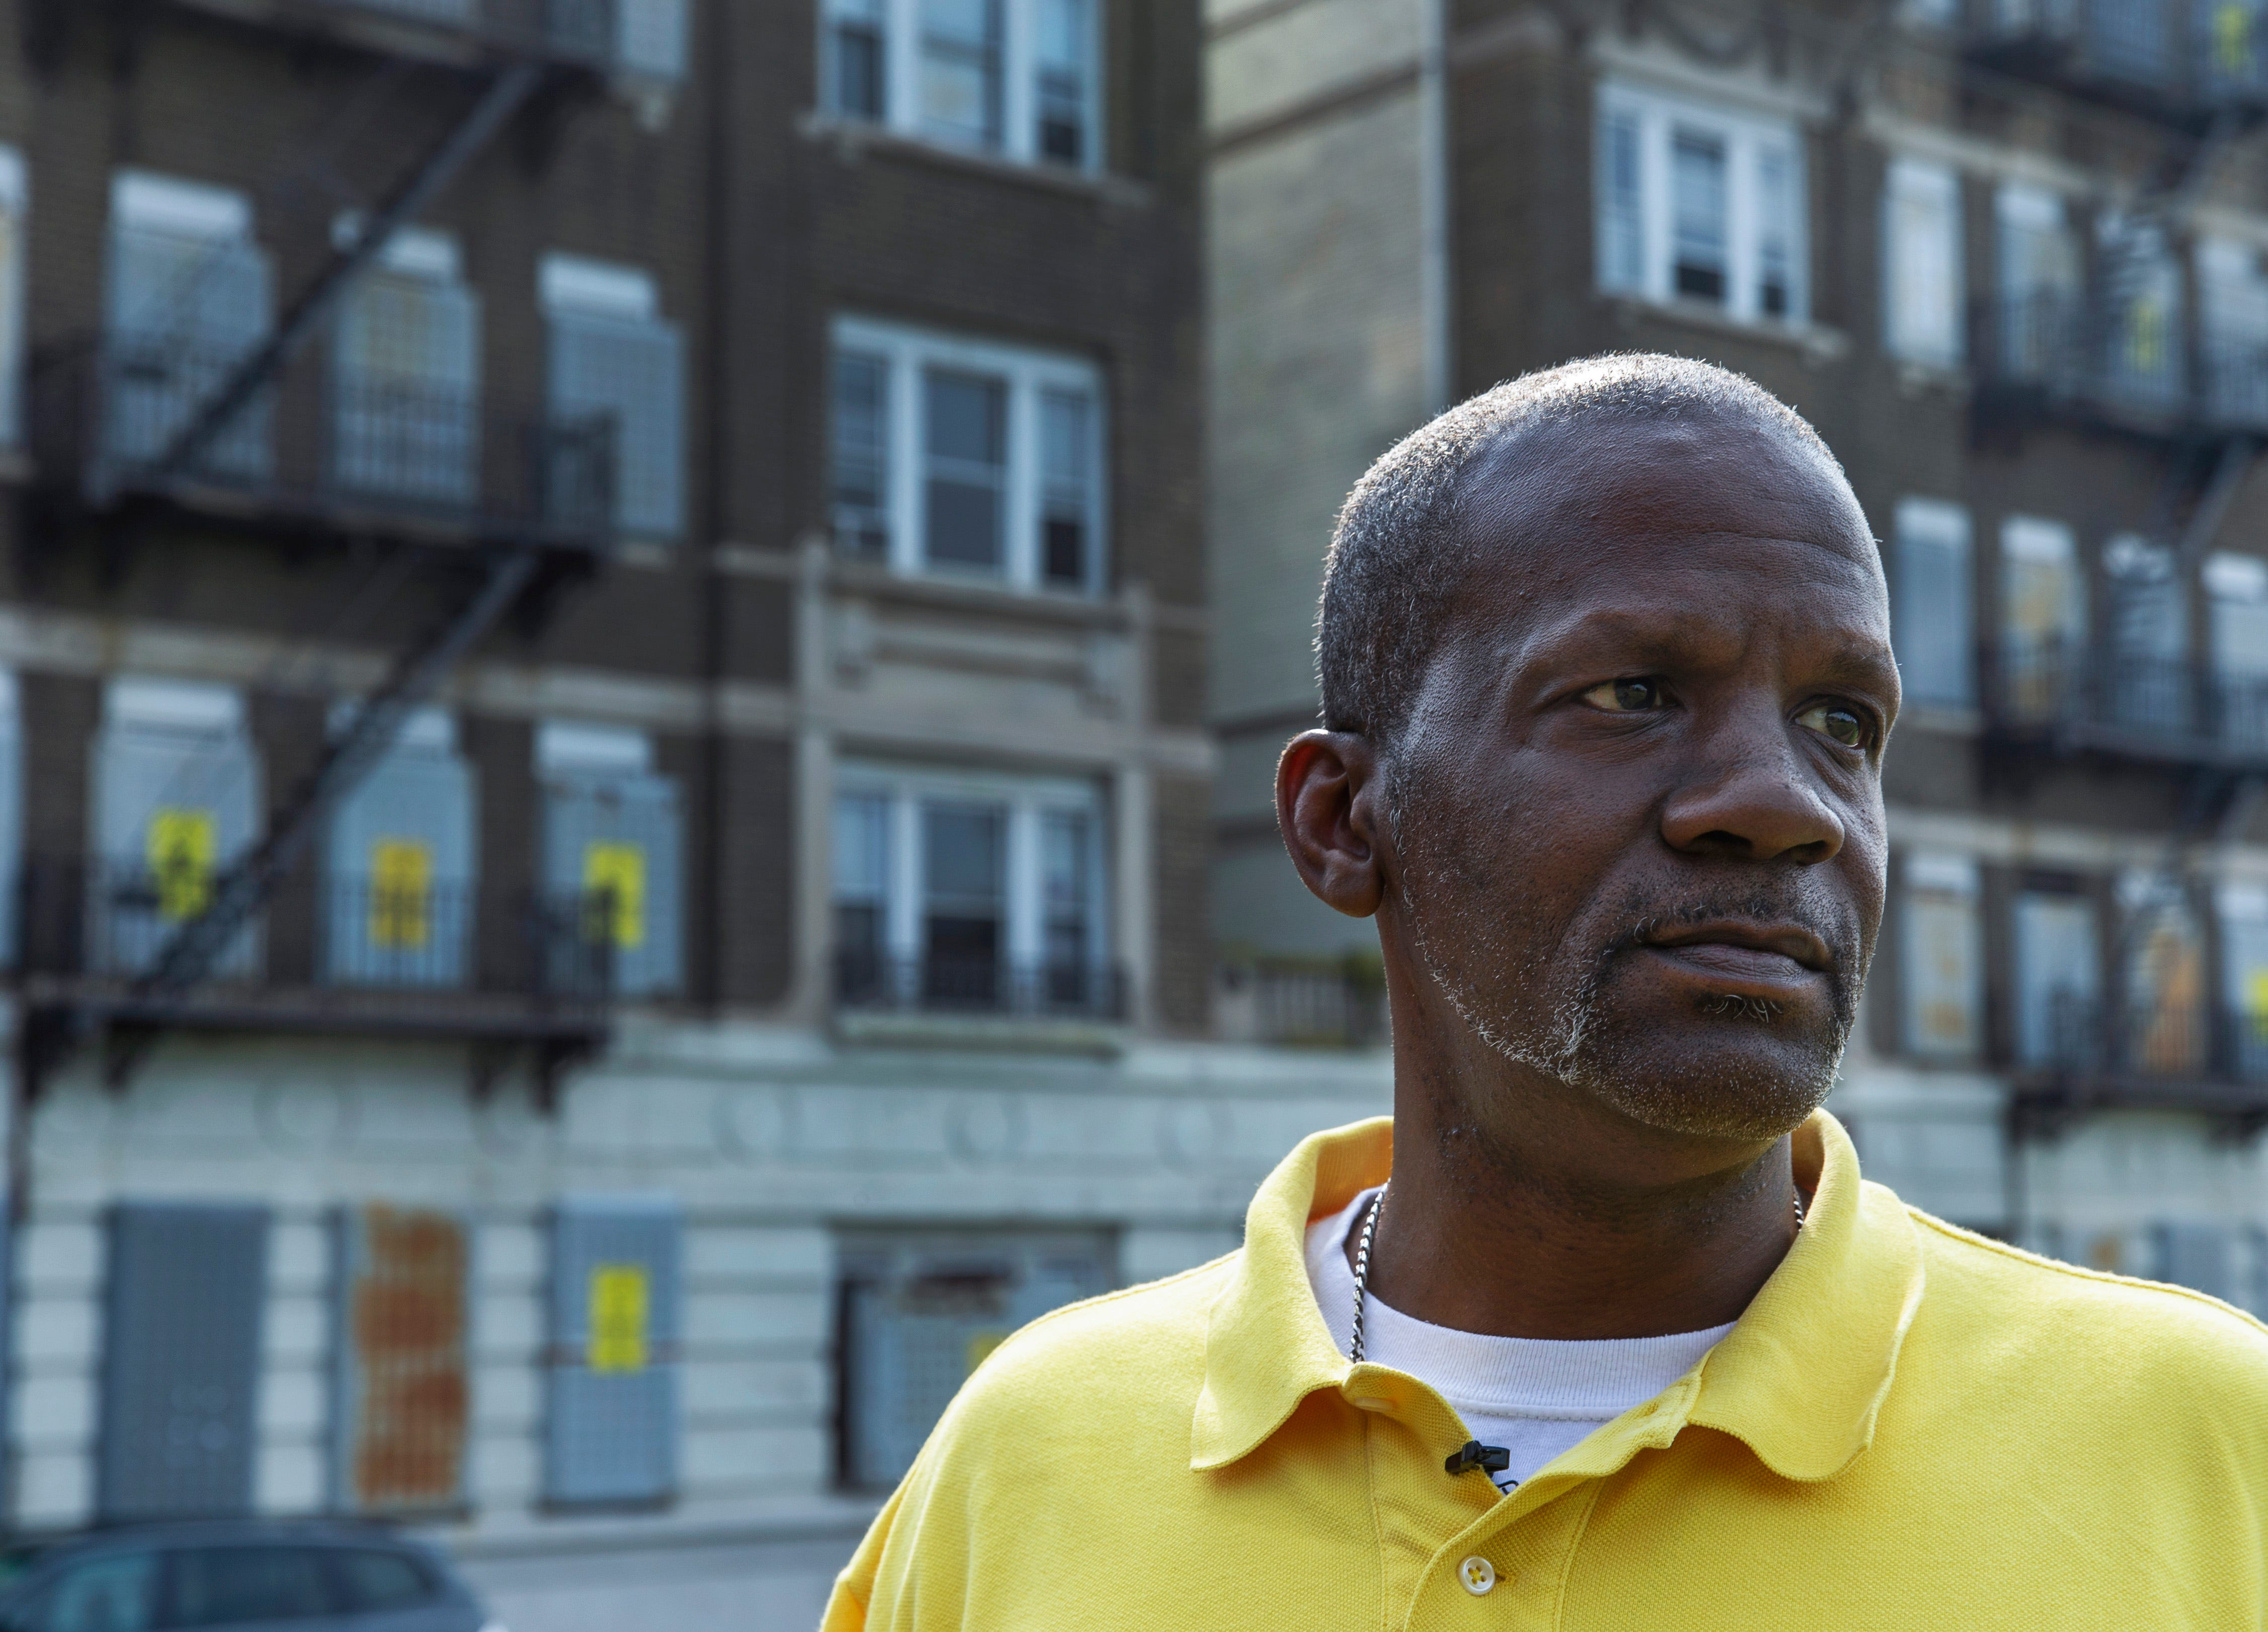 Dannis Billups shown outside the Aspen Stratford Apartments, the building in Newark, New Jersey where he started dealing drugs as a teenager in the 1980s.